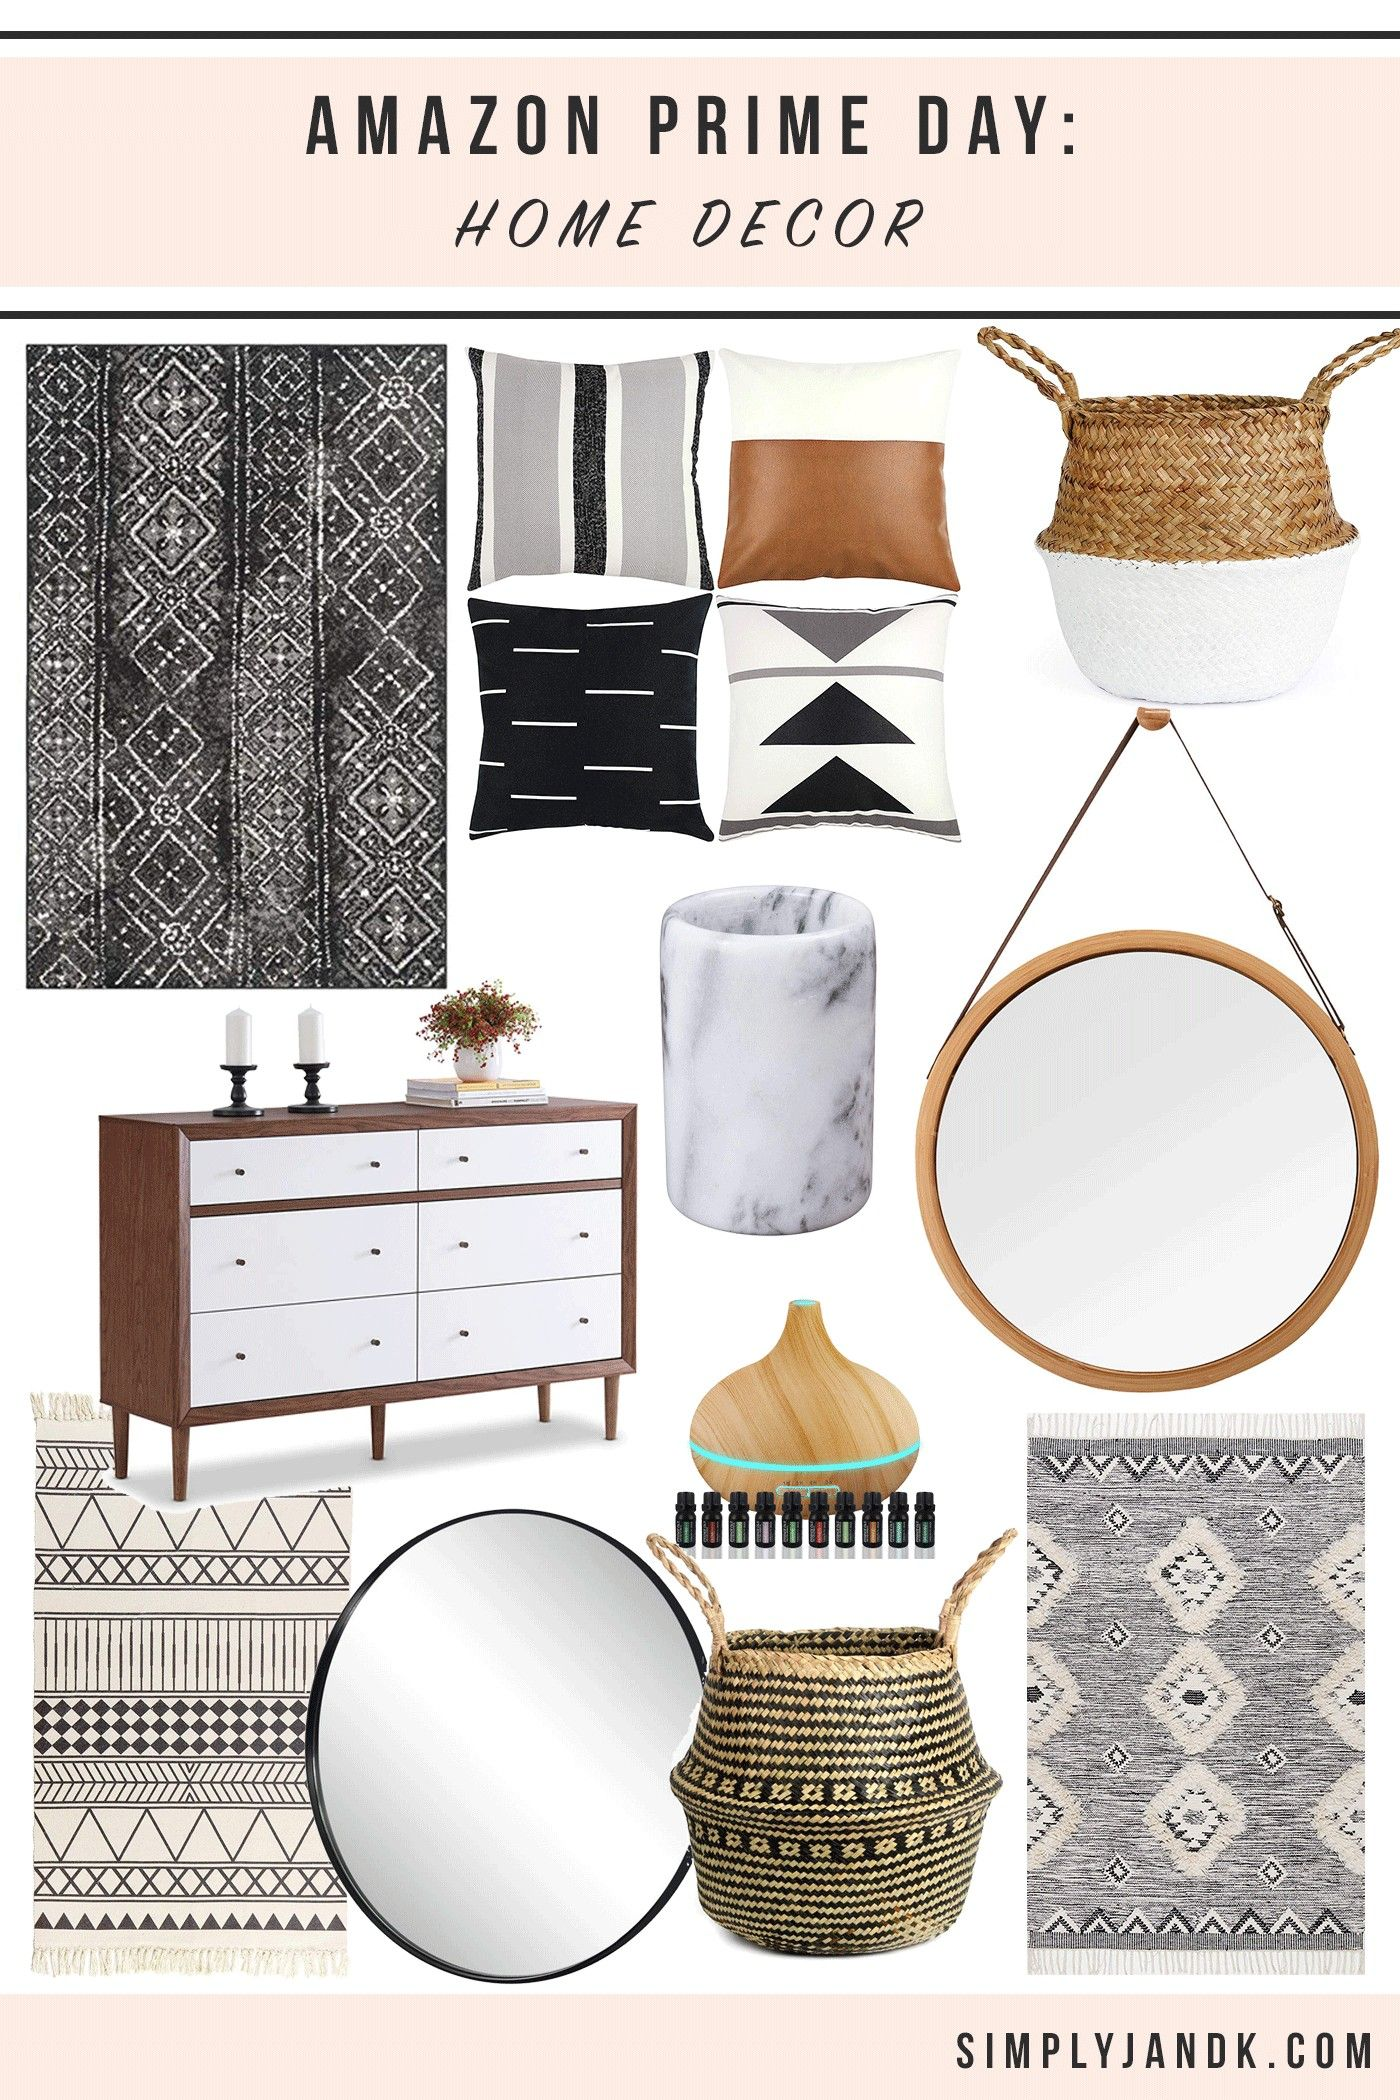 The Best Home Deals From Amazon Prime Day Home Decor Home Decor Amazon Home Decor Home Goods